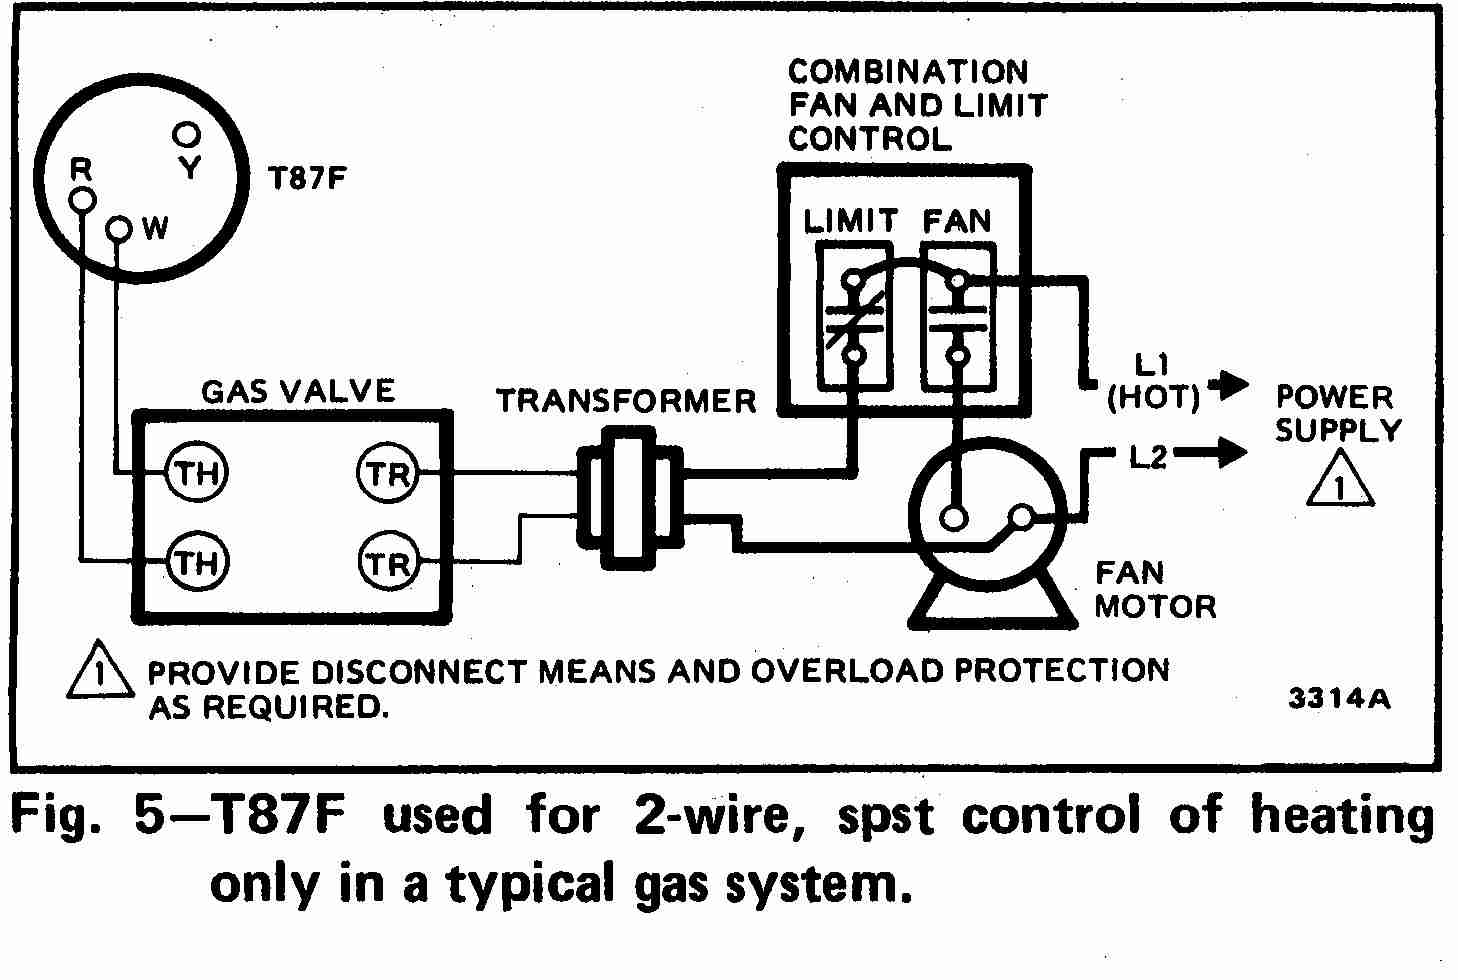 TT_T87F_0002_2Wg_DJF room thermostat wiring diagrams for hvac systems electric heat thermostat wiring diagram at n-0.co